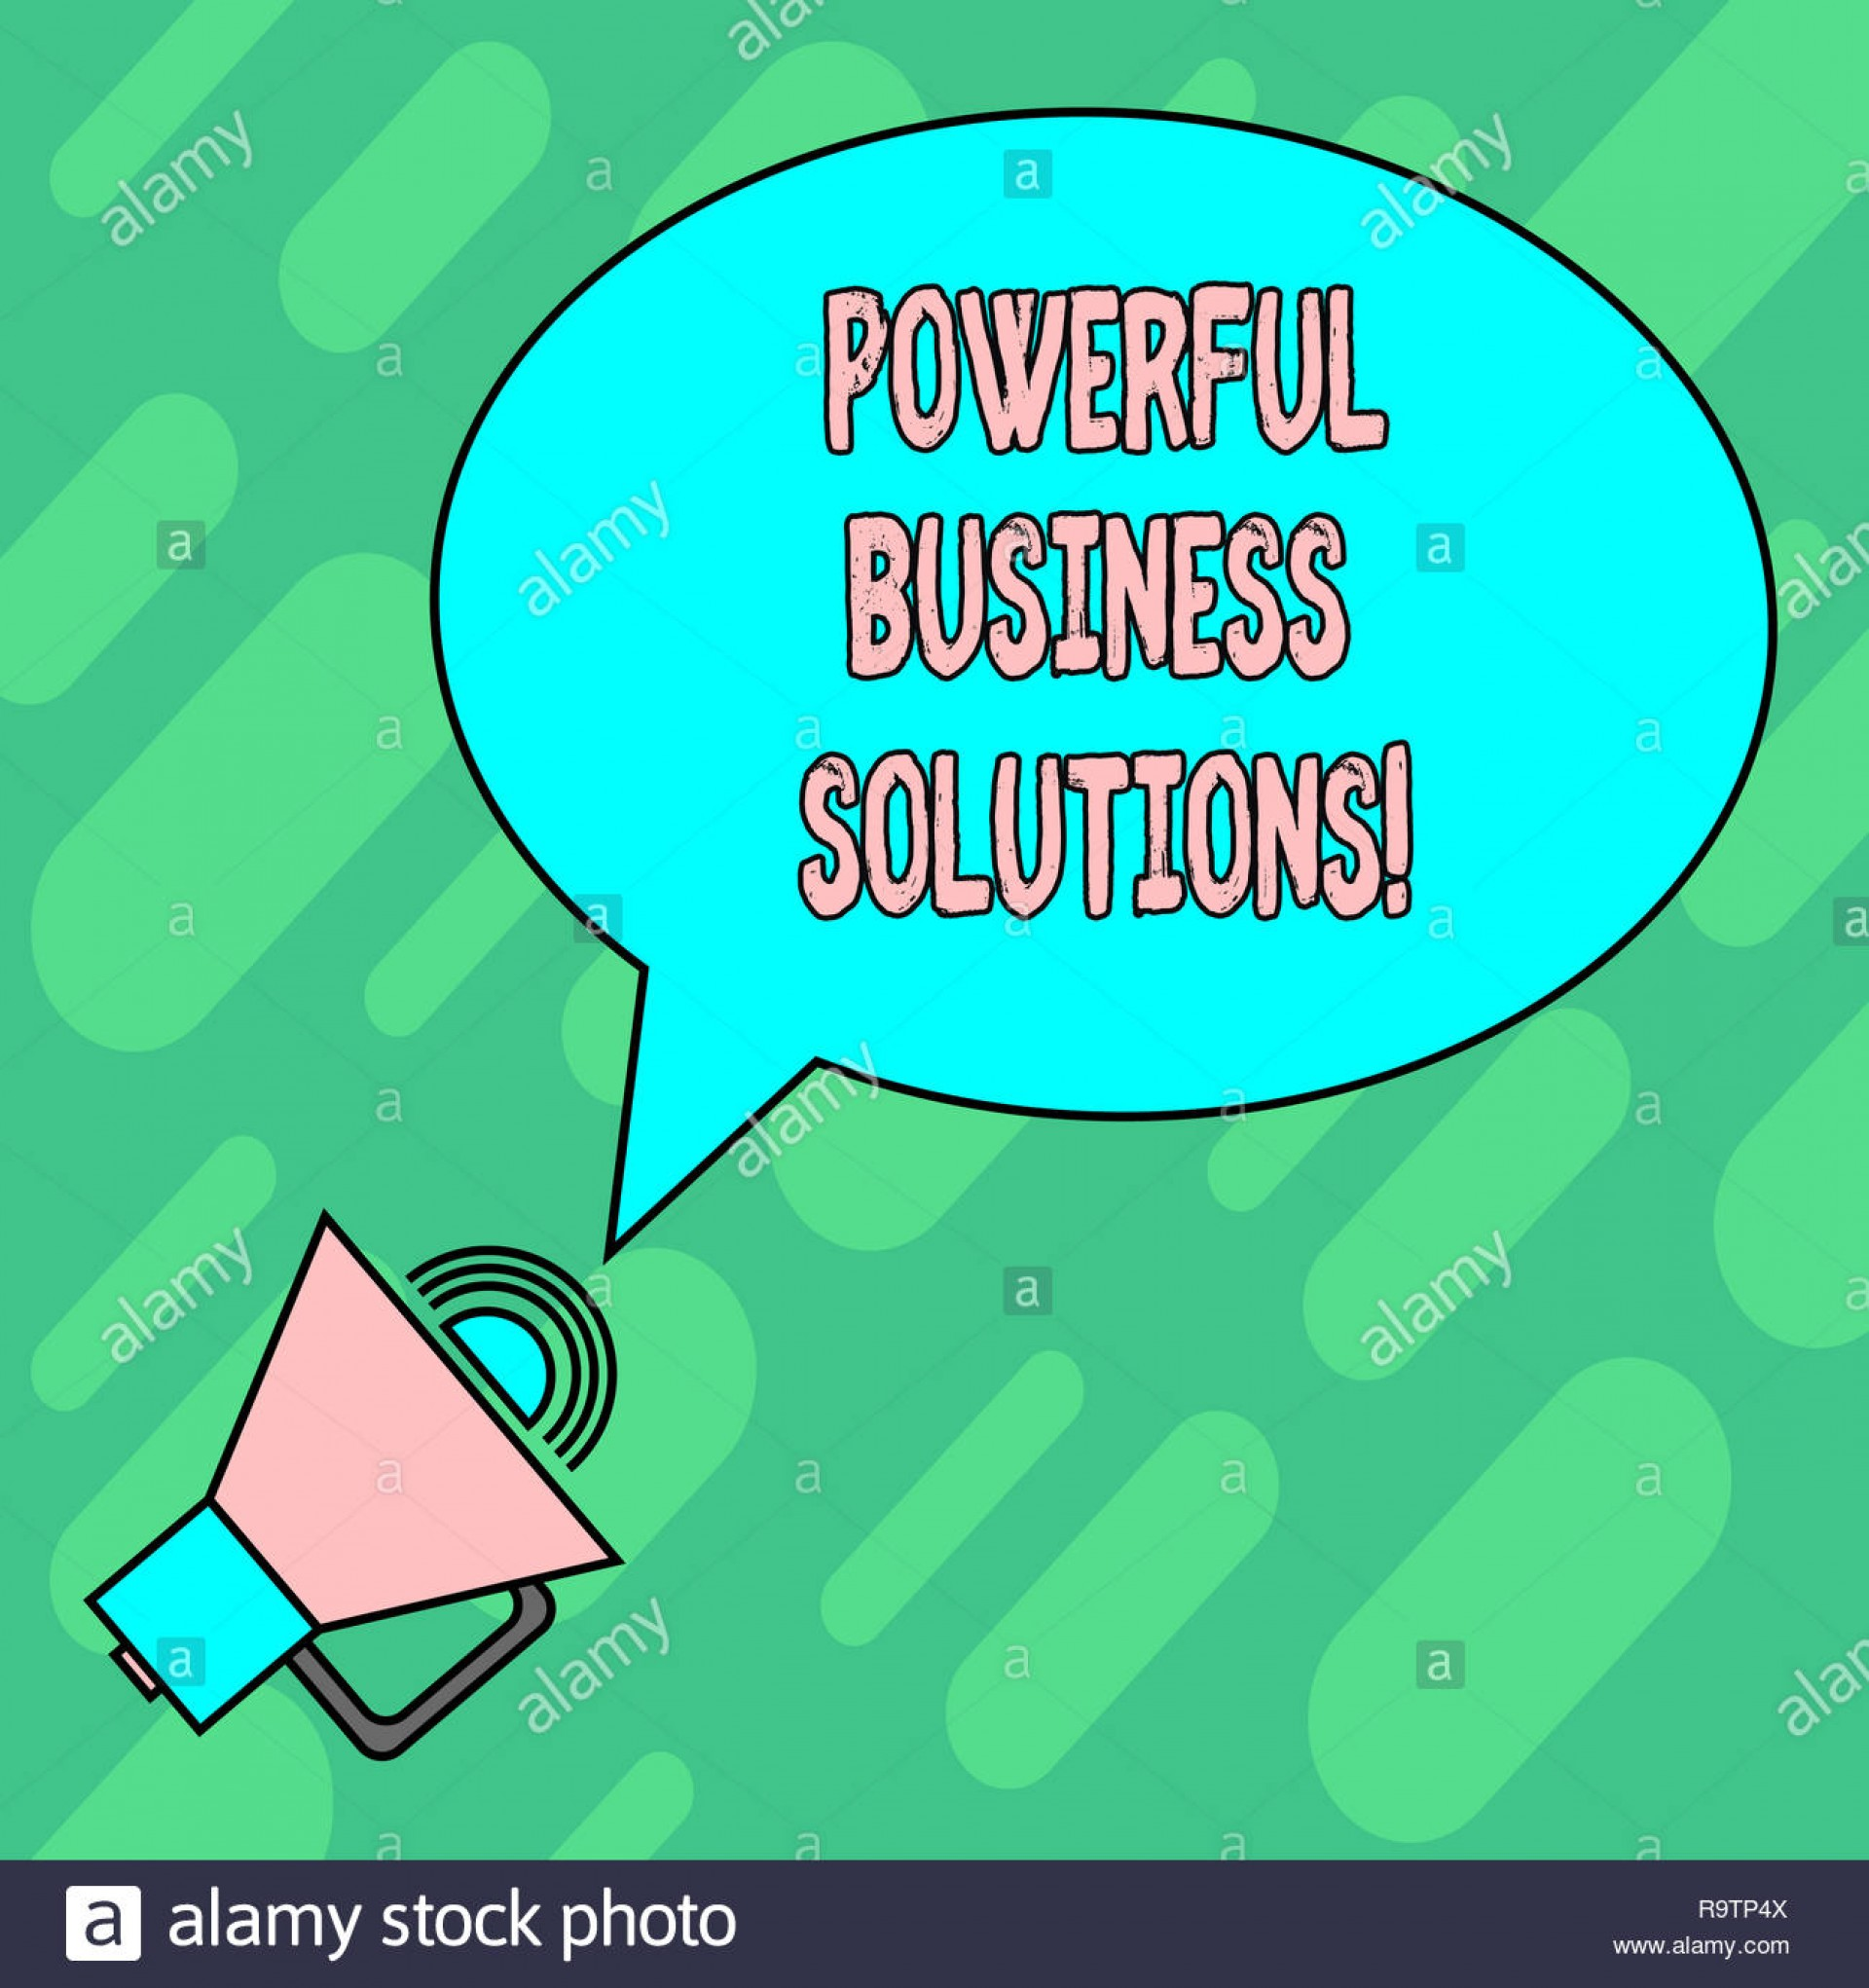 018 Handwriting Text Writing Powerful Business Solutions Concept Meaning Ideas Used To Help Company Achieve Its Goals Blank Oval Outlined Speech Bubble R9tp4x Essay Example Rare Topics Explanation Explaining A 1920